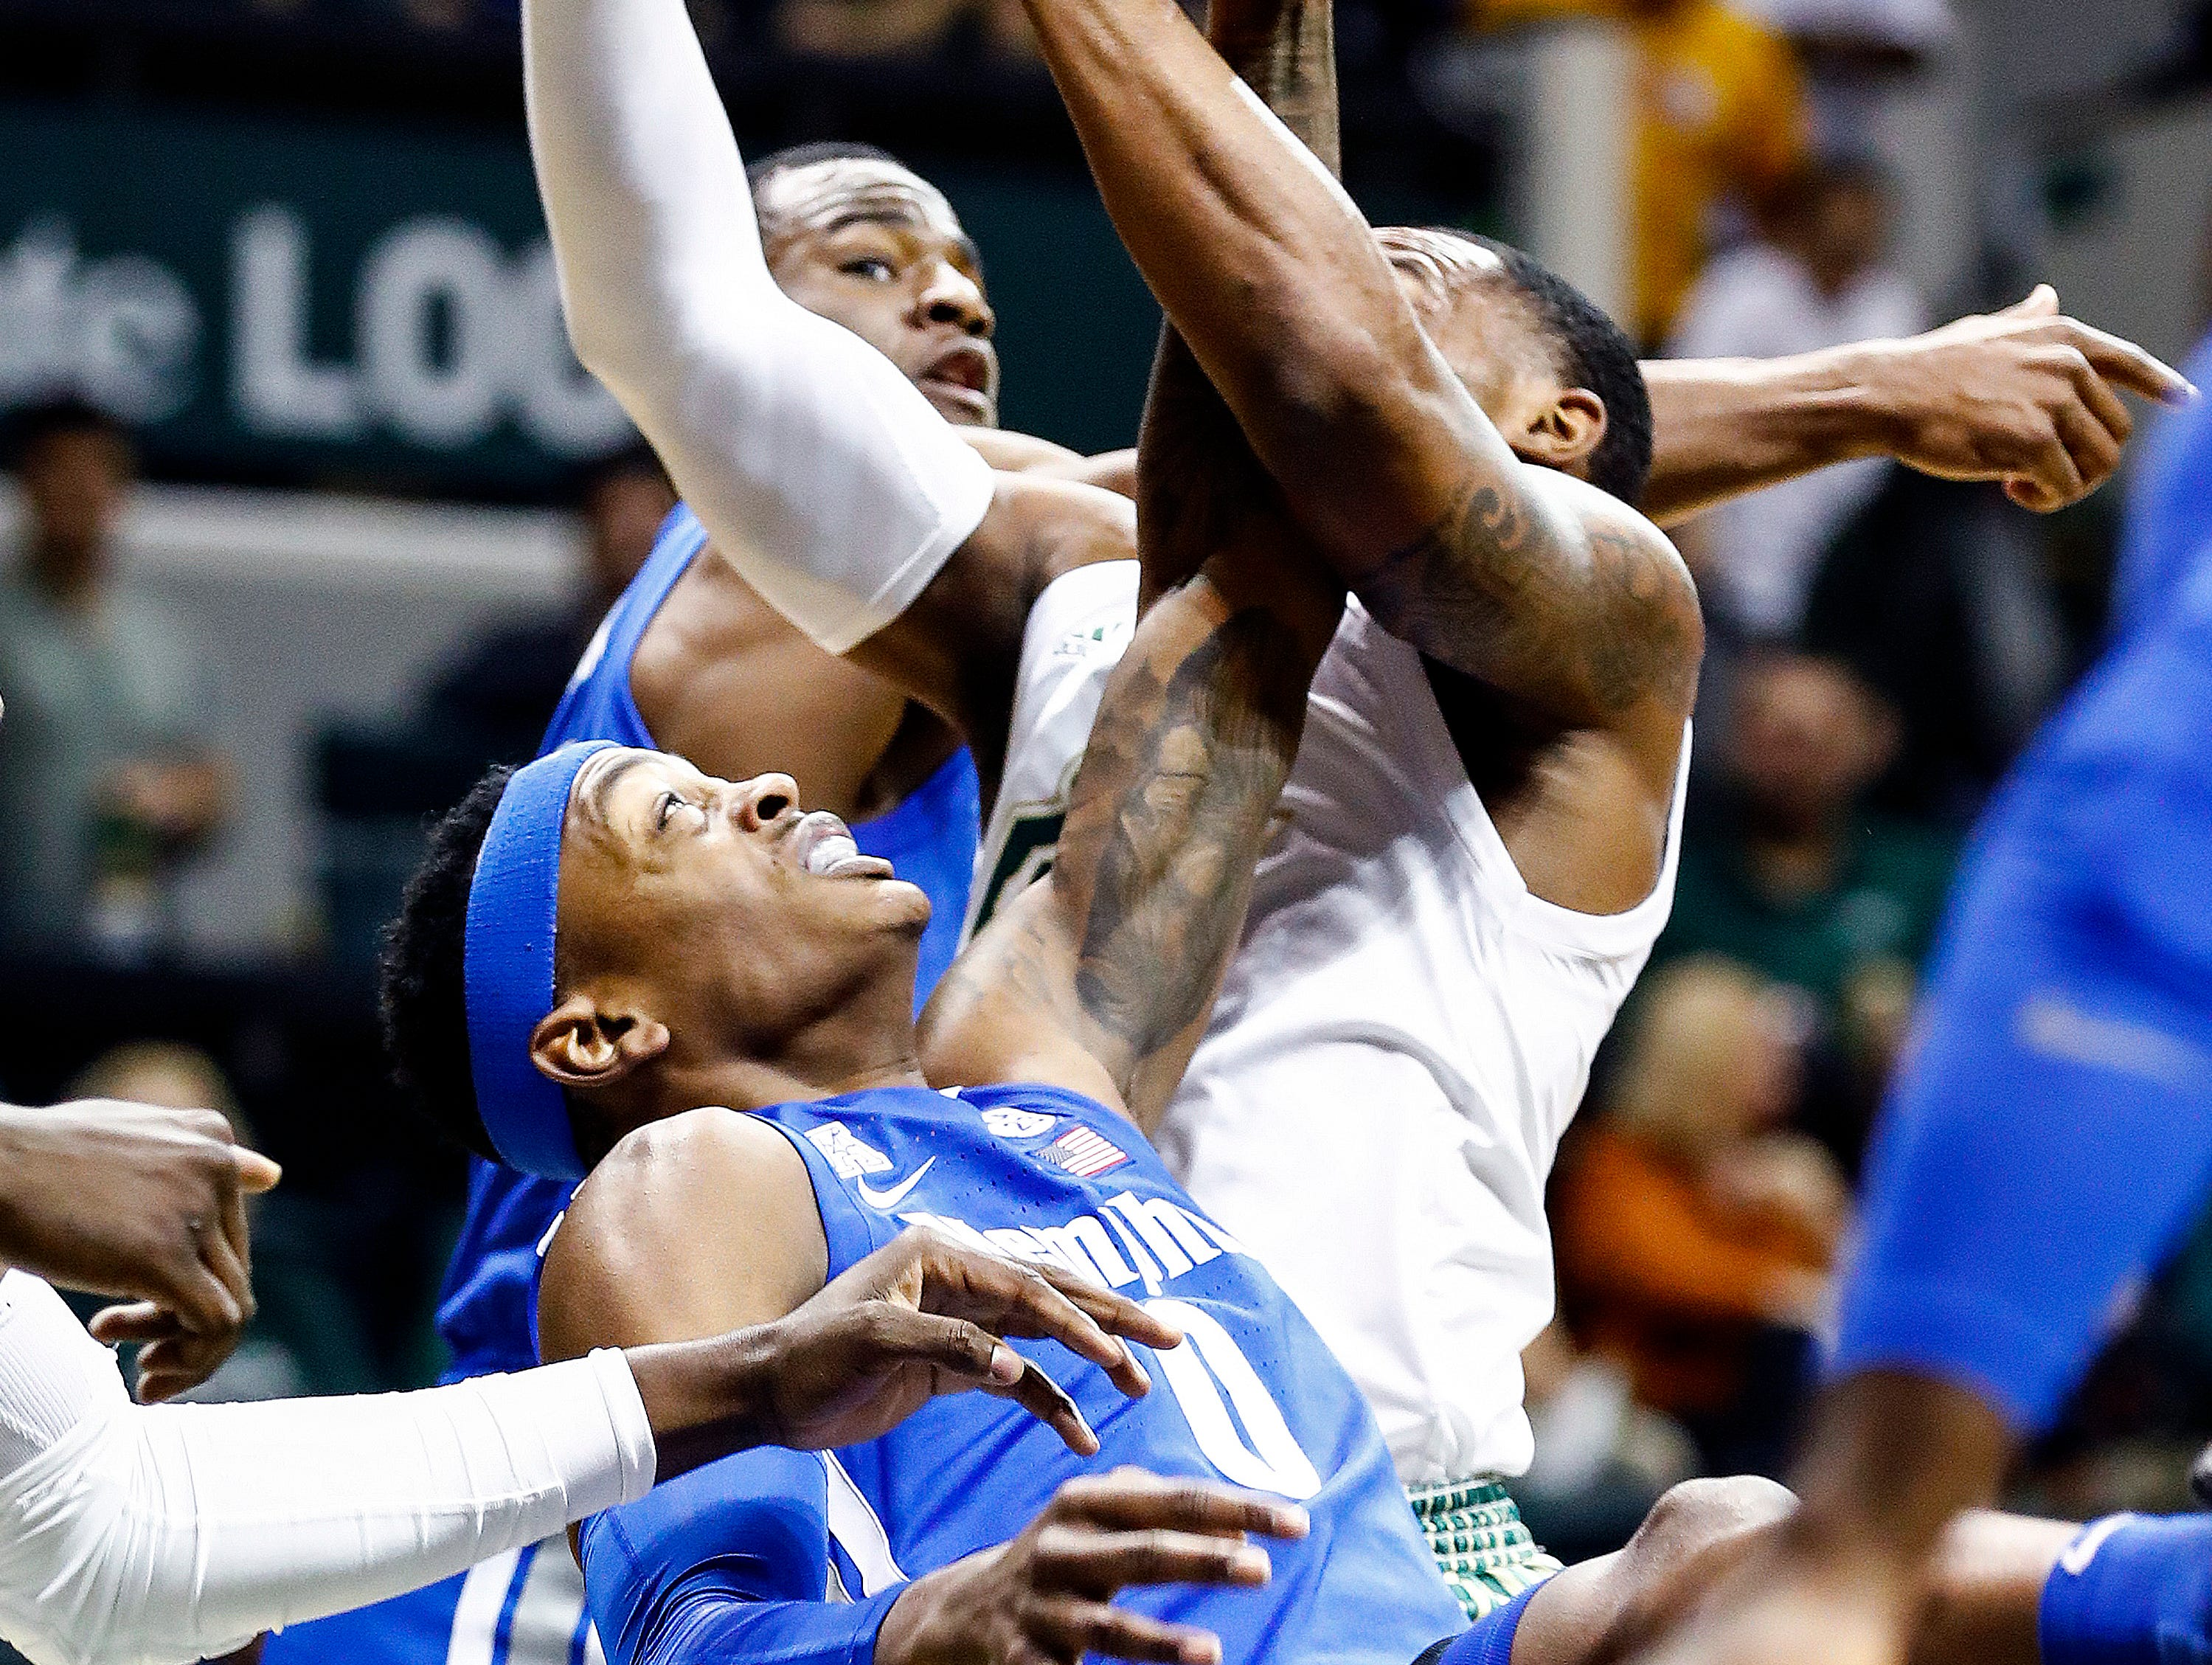 Memphis forward Kyvon Davenport (bottom) can not grab a rebound against USF during action in Tampa, Saturday, February 2, 2019.